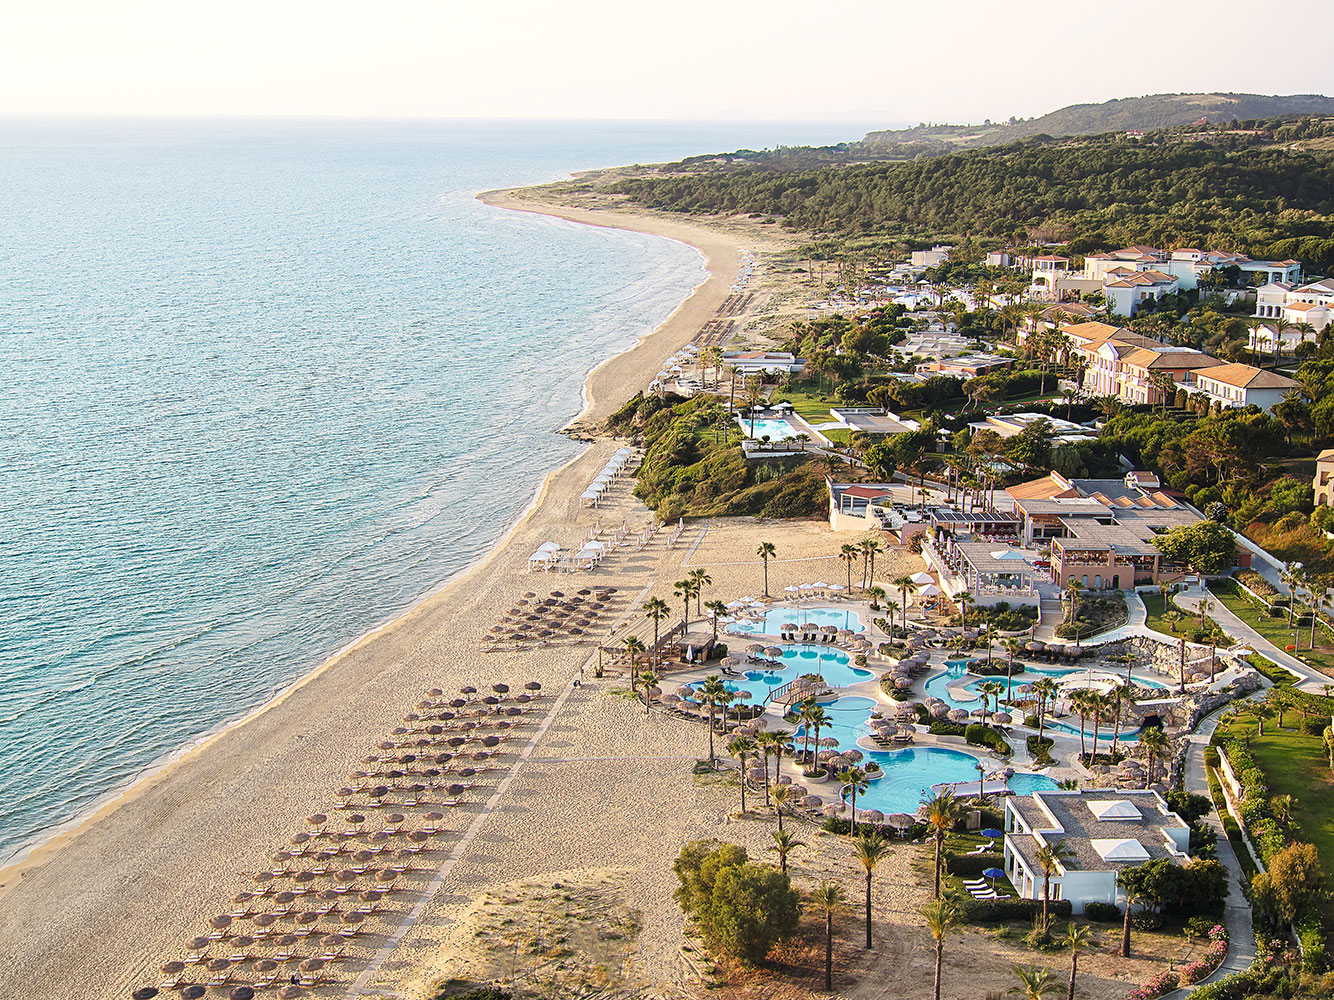 Olympia Oasis and Aqua Park one of those dream family getaways you have been imagining